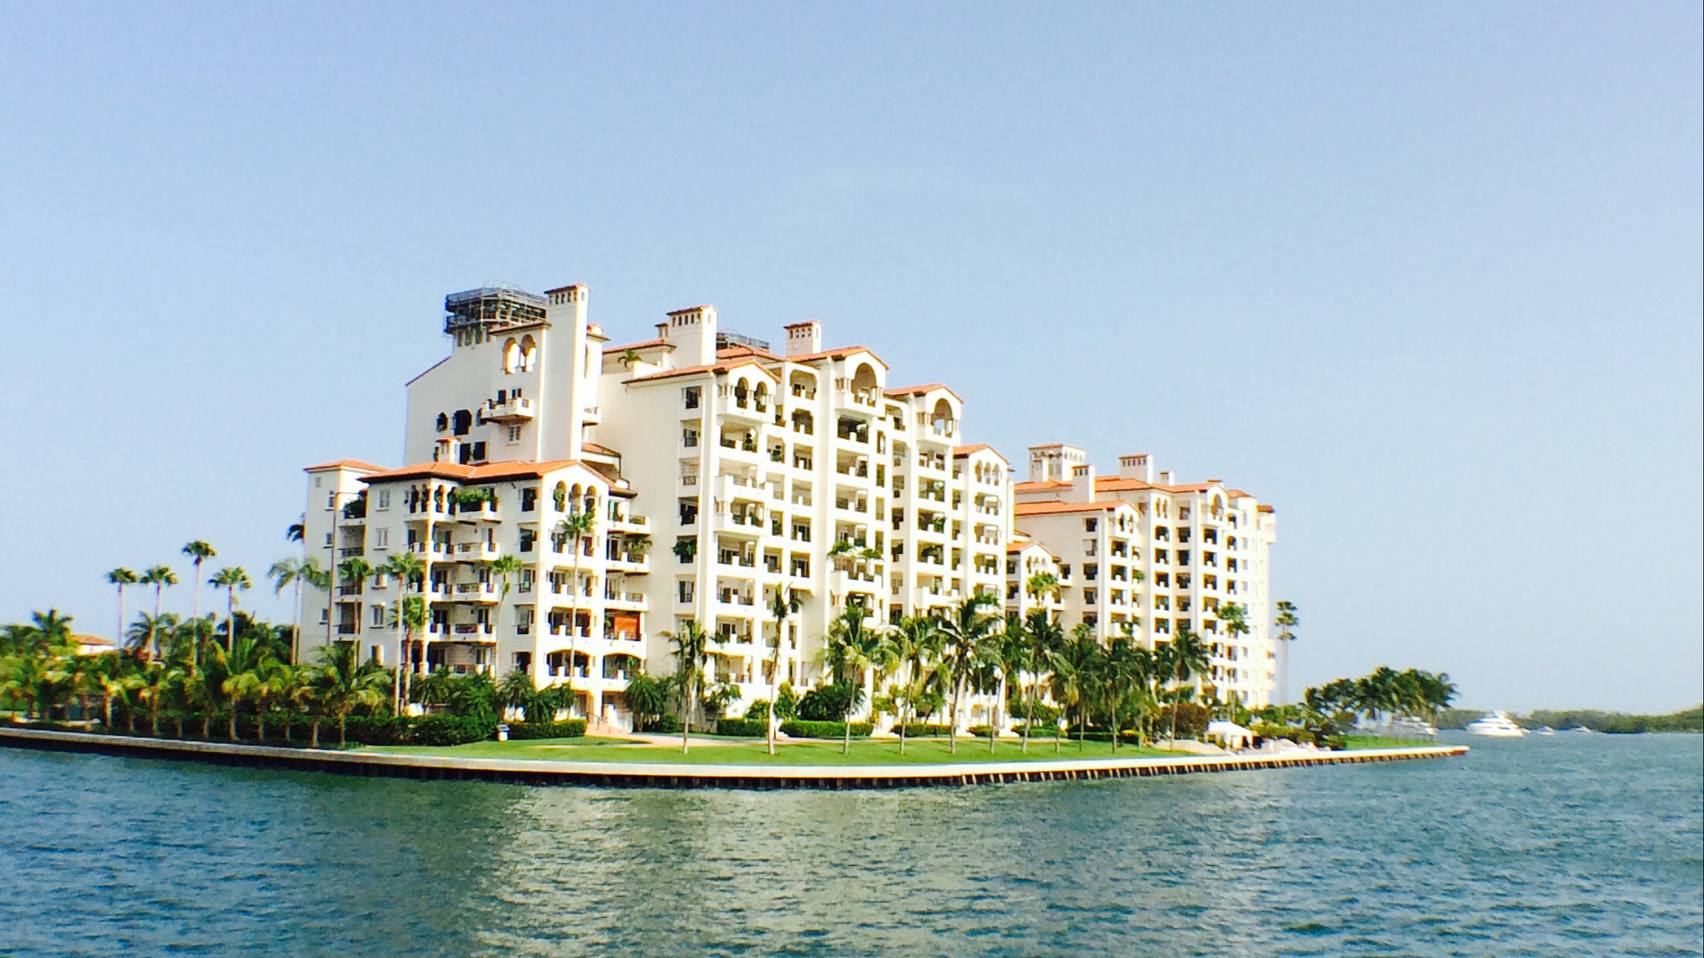 South Florida Boat Docks For Sale Miami Beach Sunny Isles | Lobster House